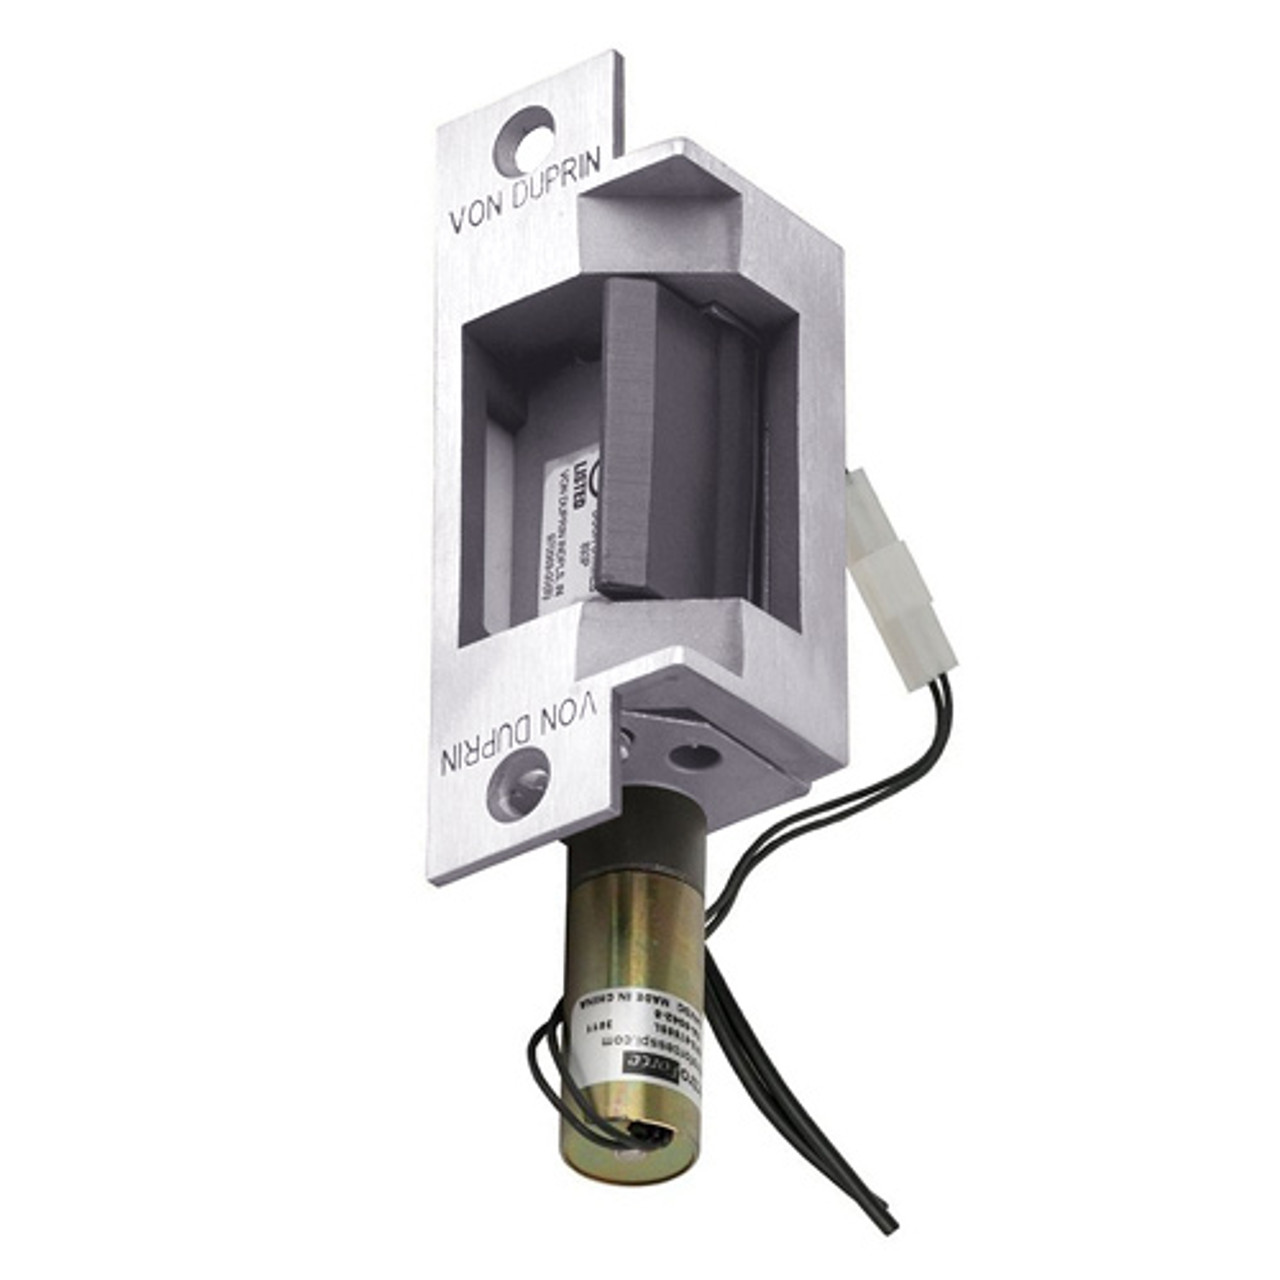 6211-FS-DS-LC-12VDC-US32 Von Duprin Electric Strike in Bright Stainless Steel Finish